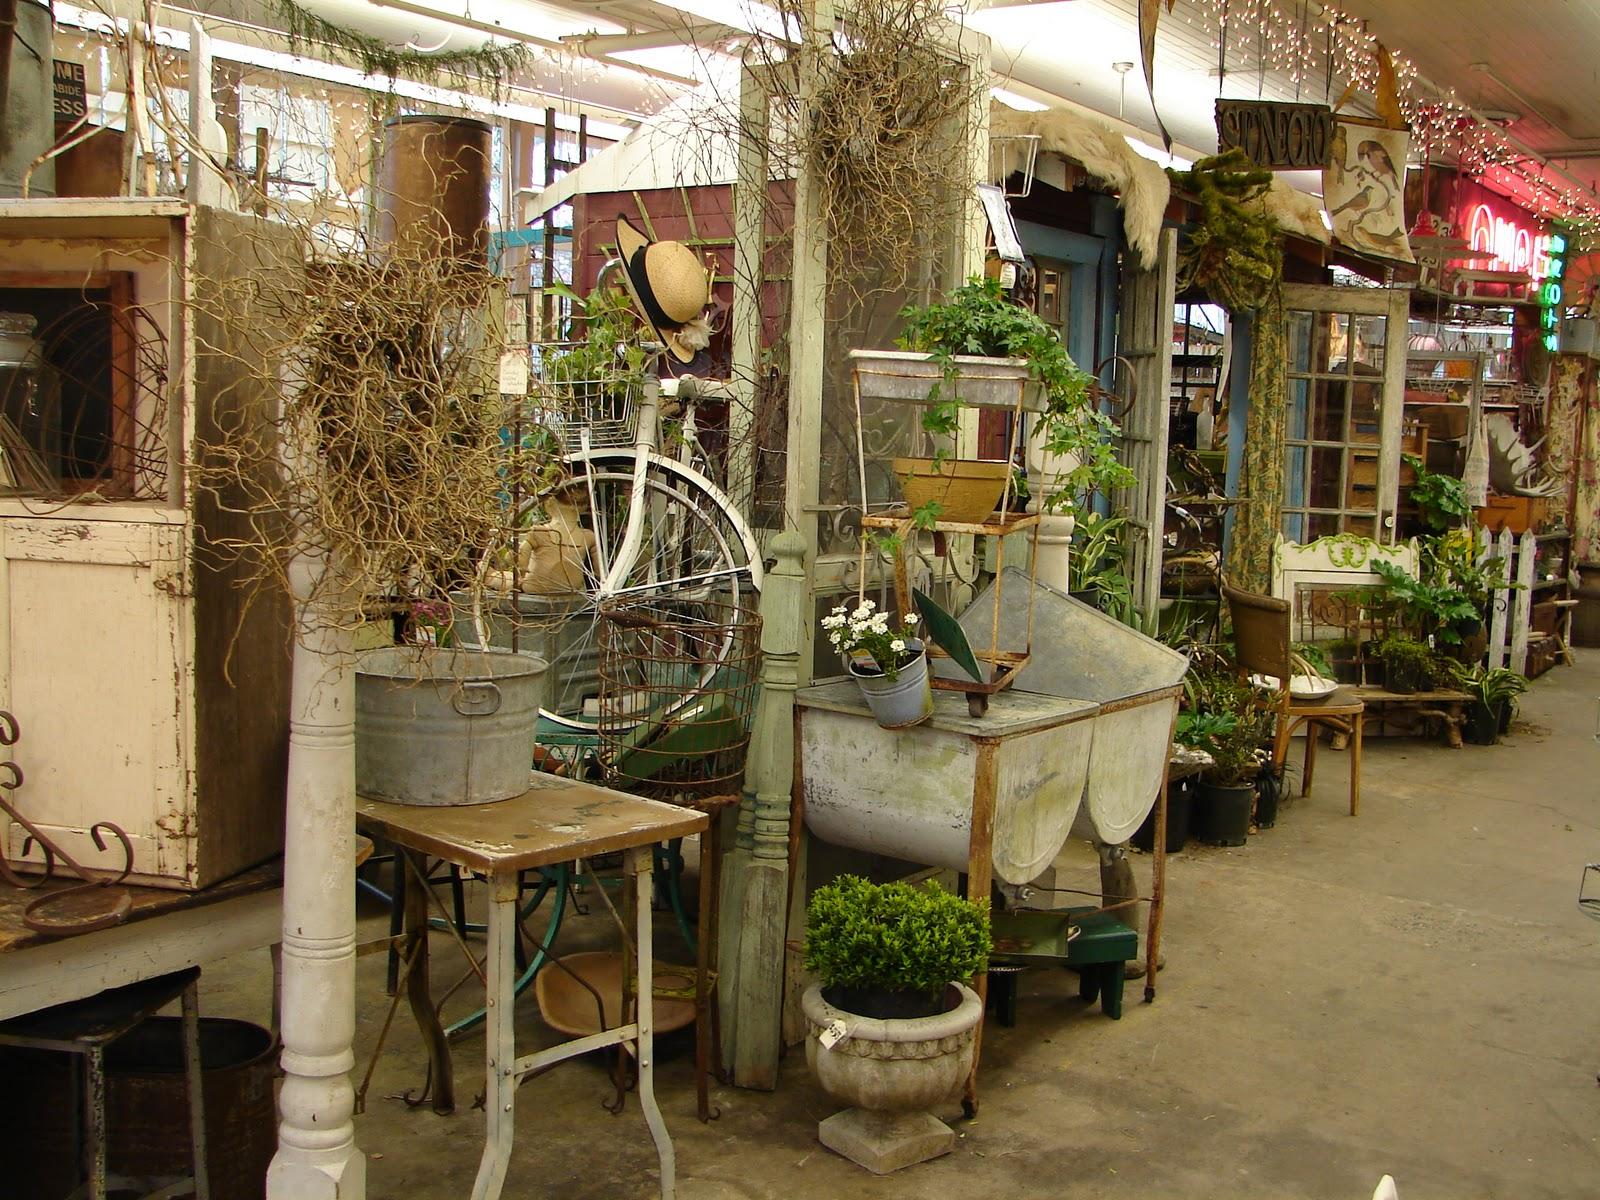 Monticello antique marketplace garden show sneeky peeks - Garden decor stores ...